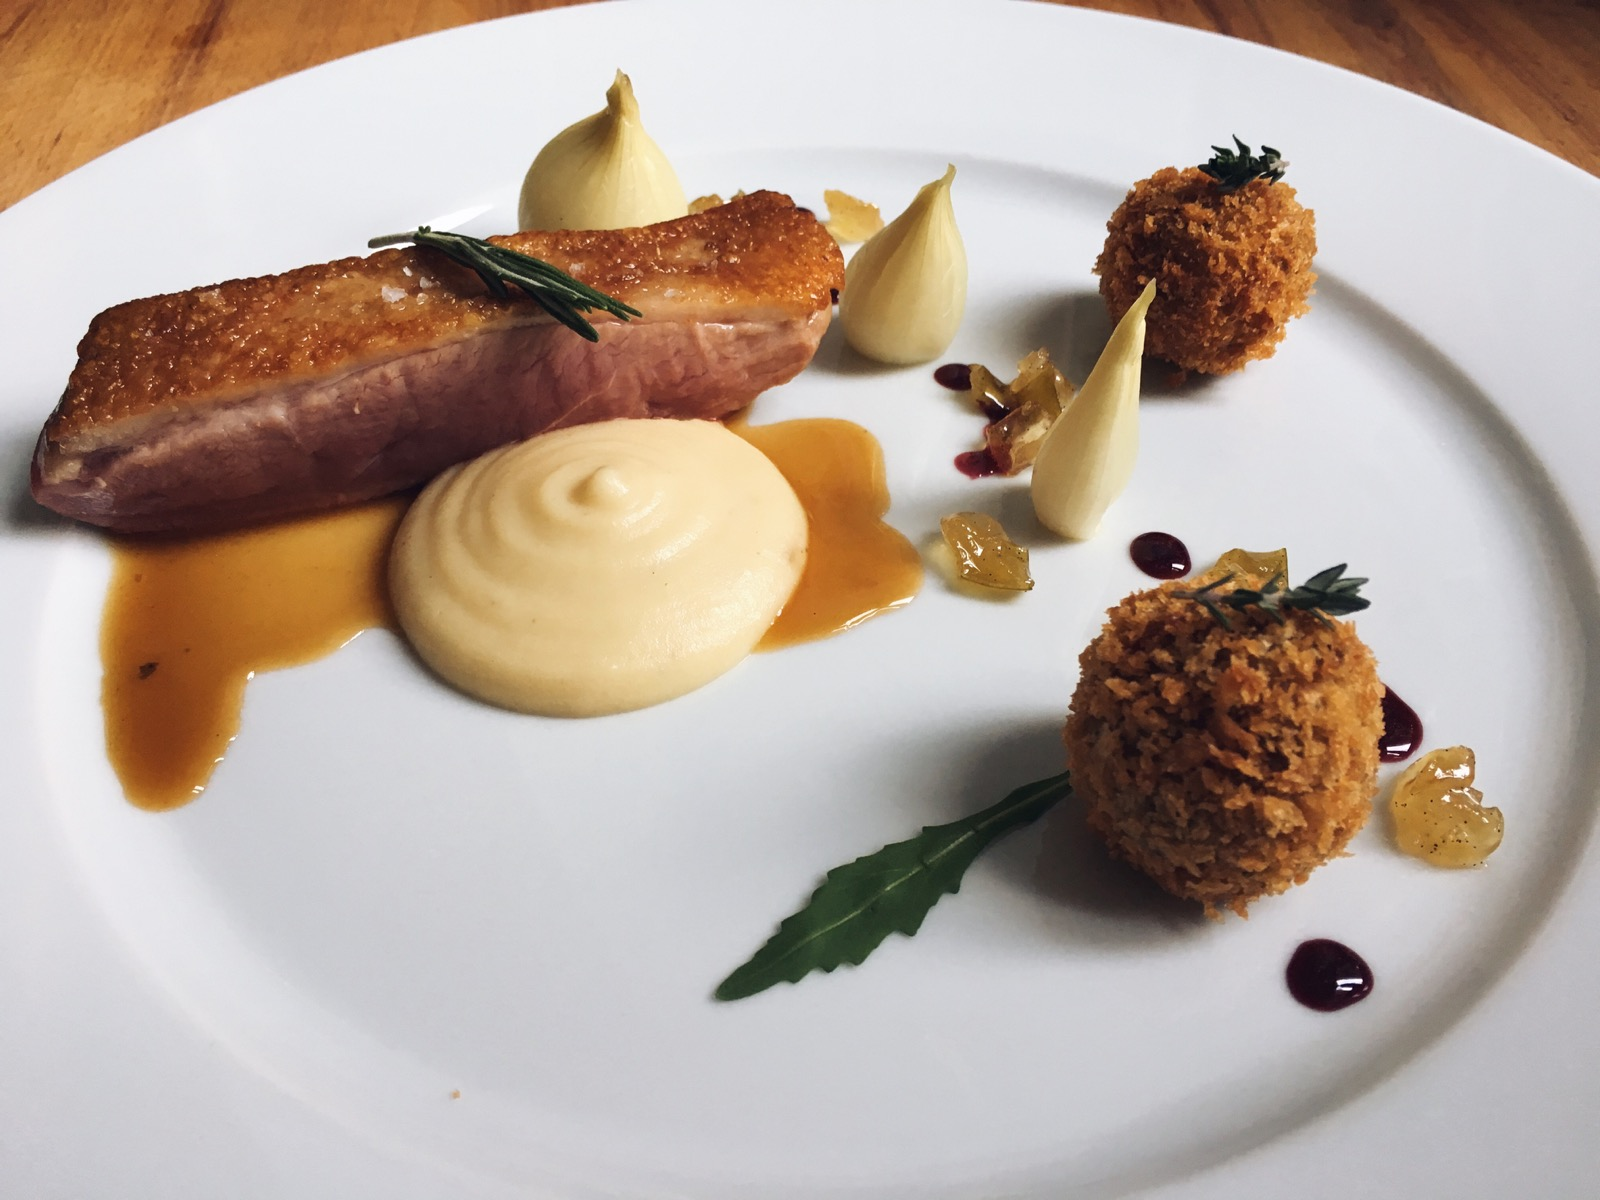 Seared Duck Breast with Smoked Confit Bon Bons